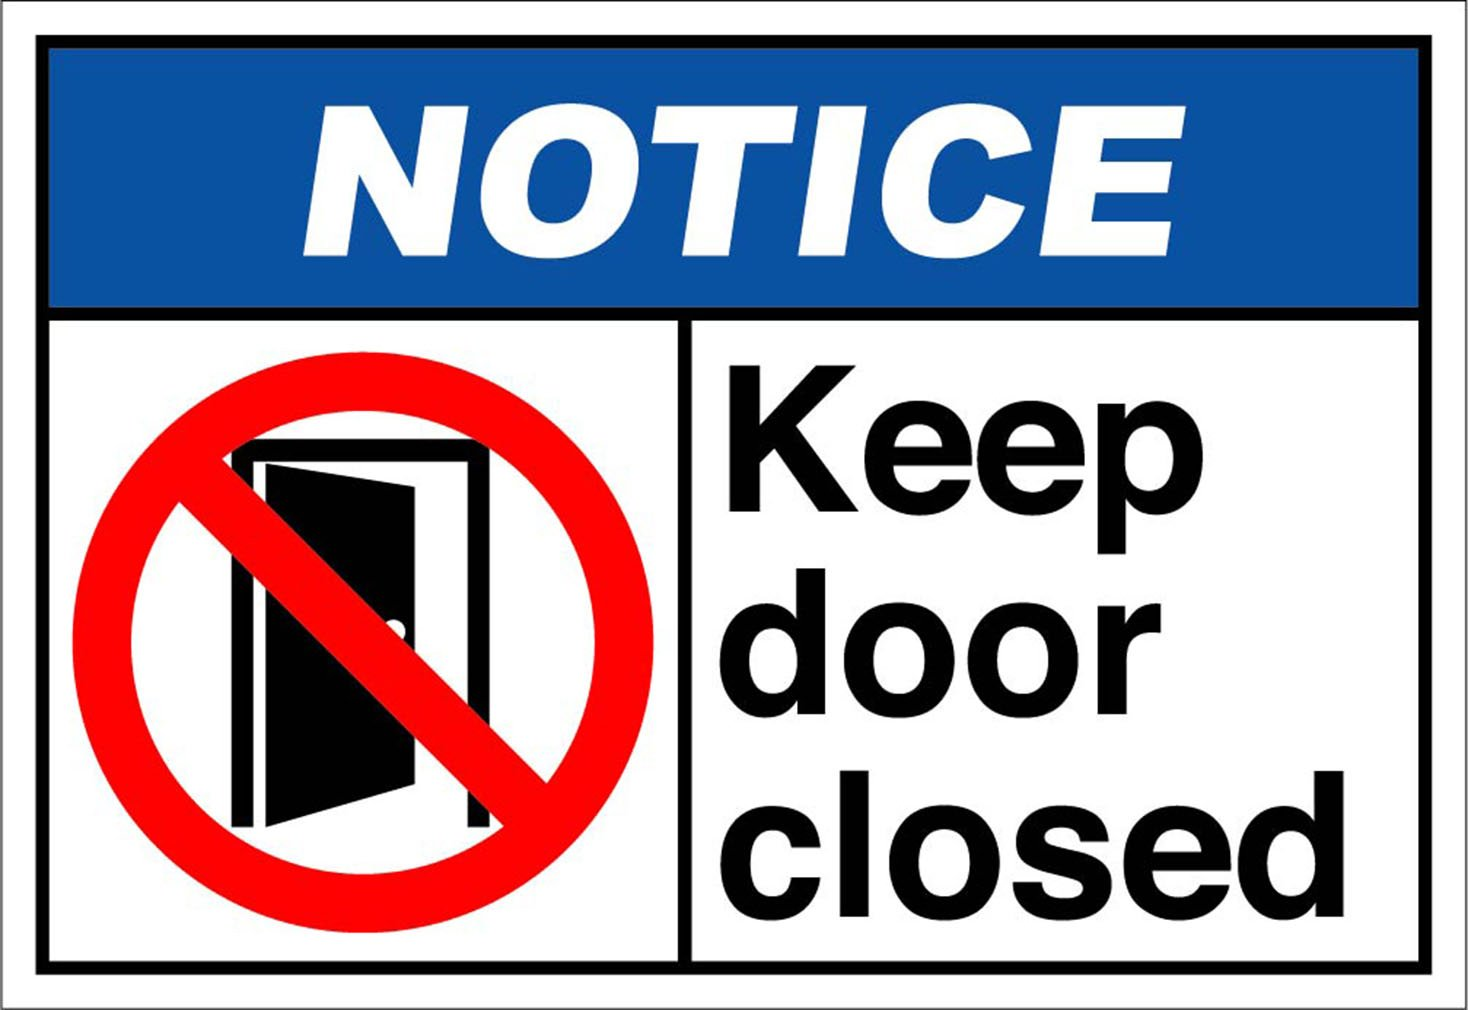 Keep Door Closed Notice OSHA / ANSI LABEL DECAL STICKER 10 inches x 7 inches